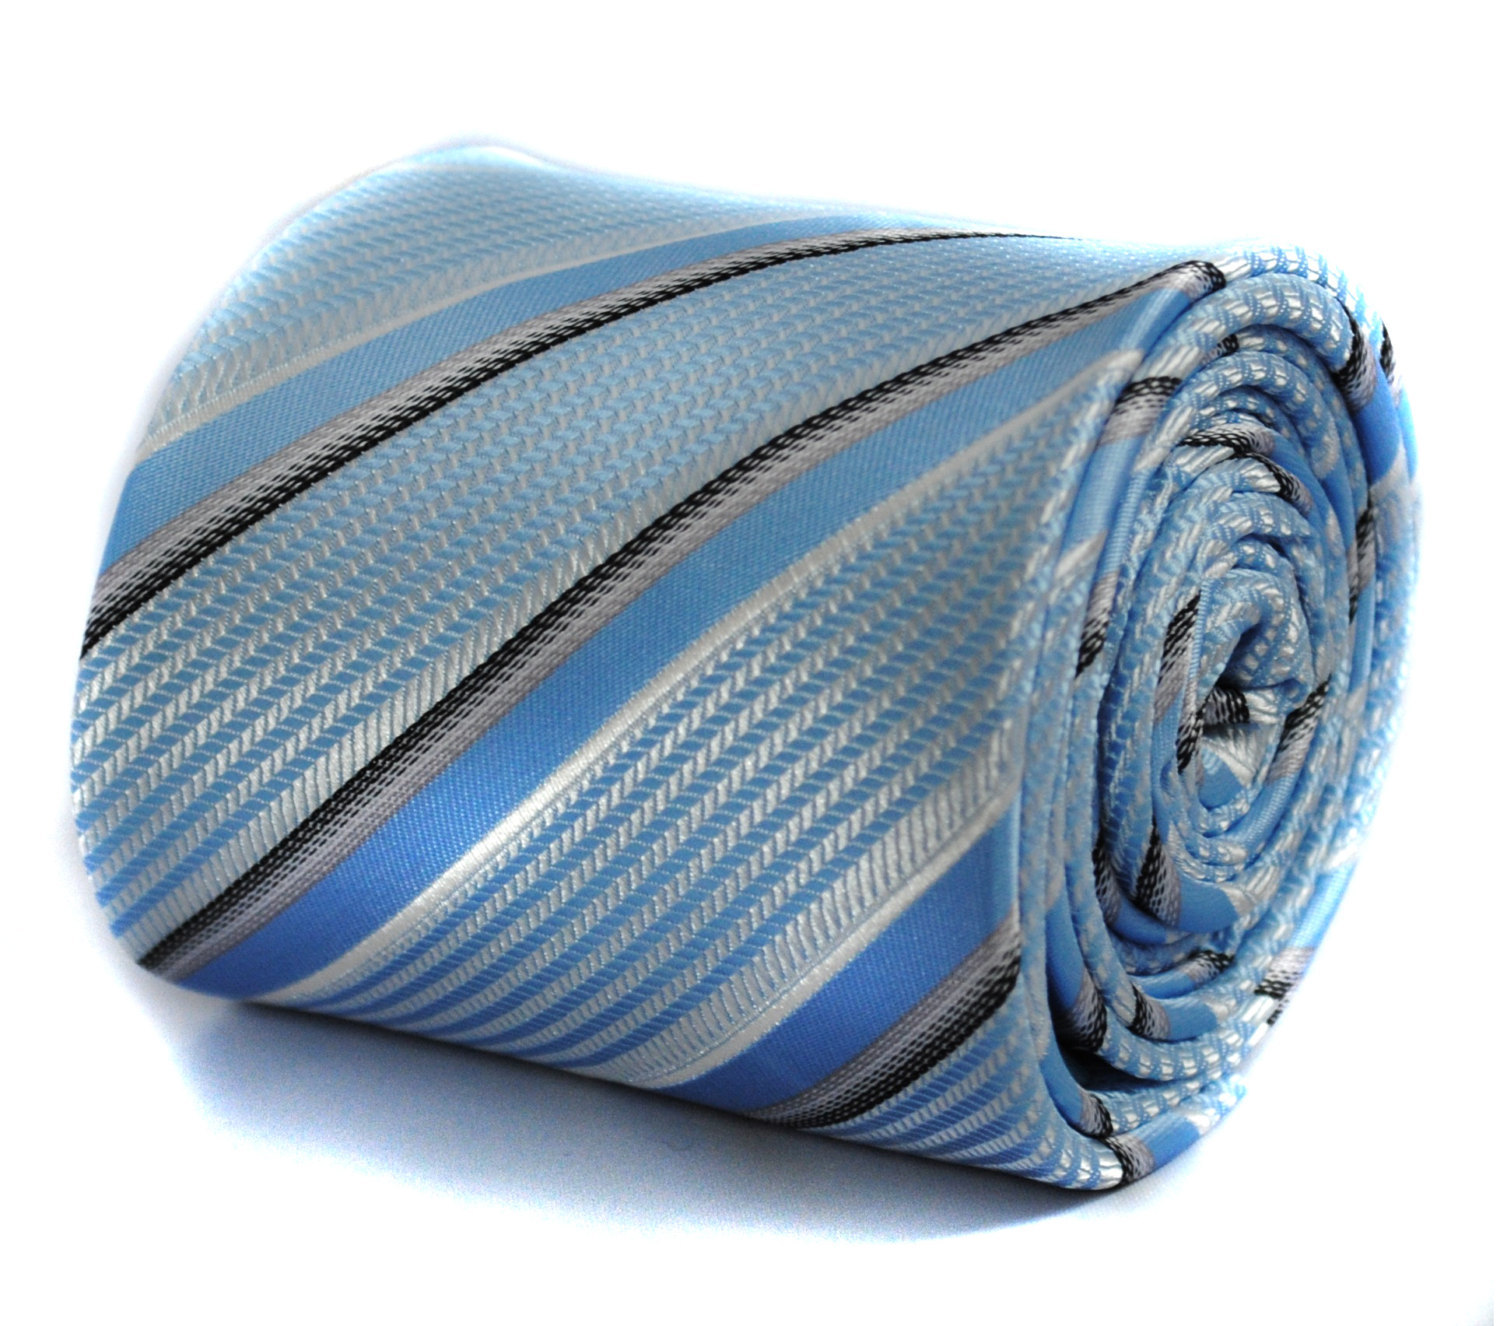 blue striped tie with floral design to the rear by Frederick Thomas FT214